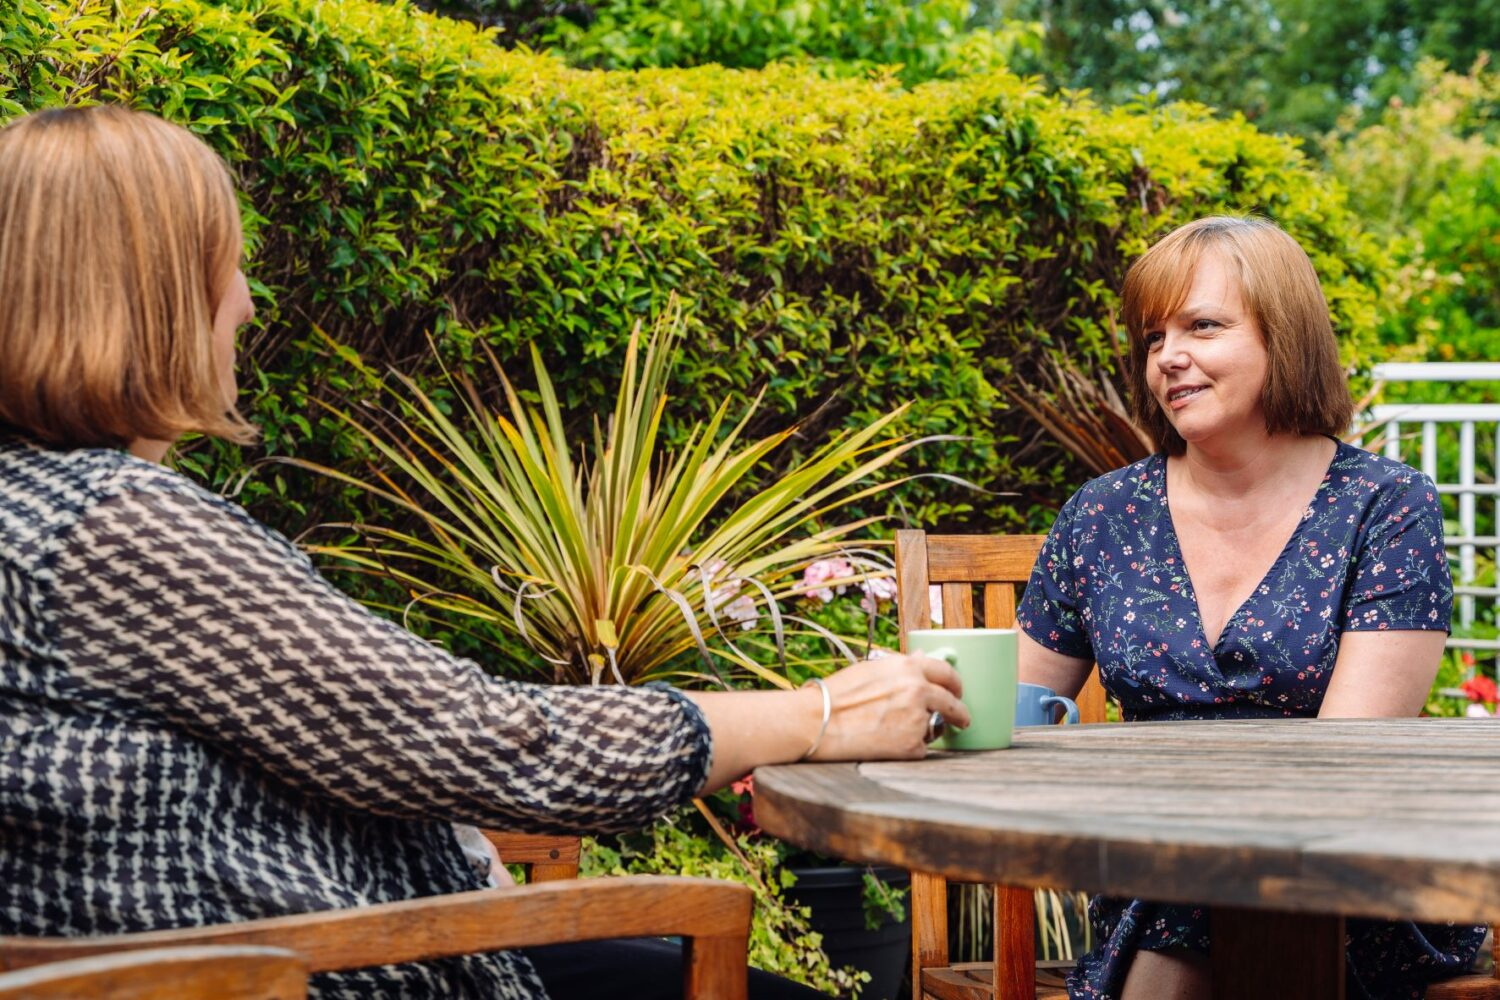 Counsellor and client outside with cup of tea